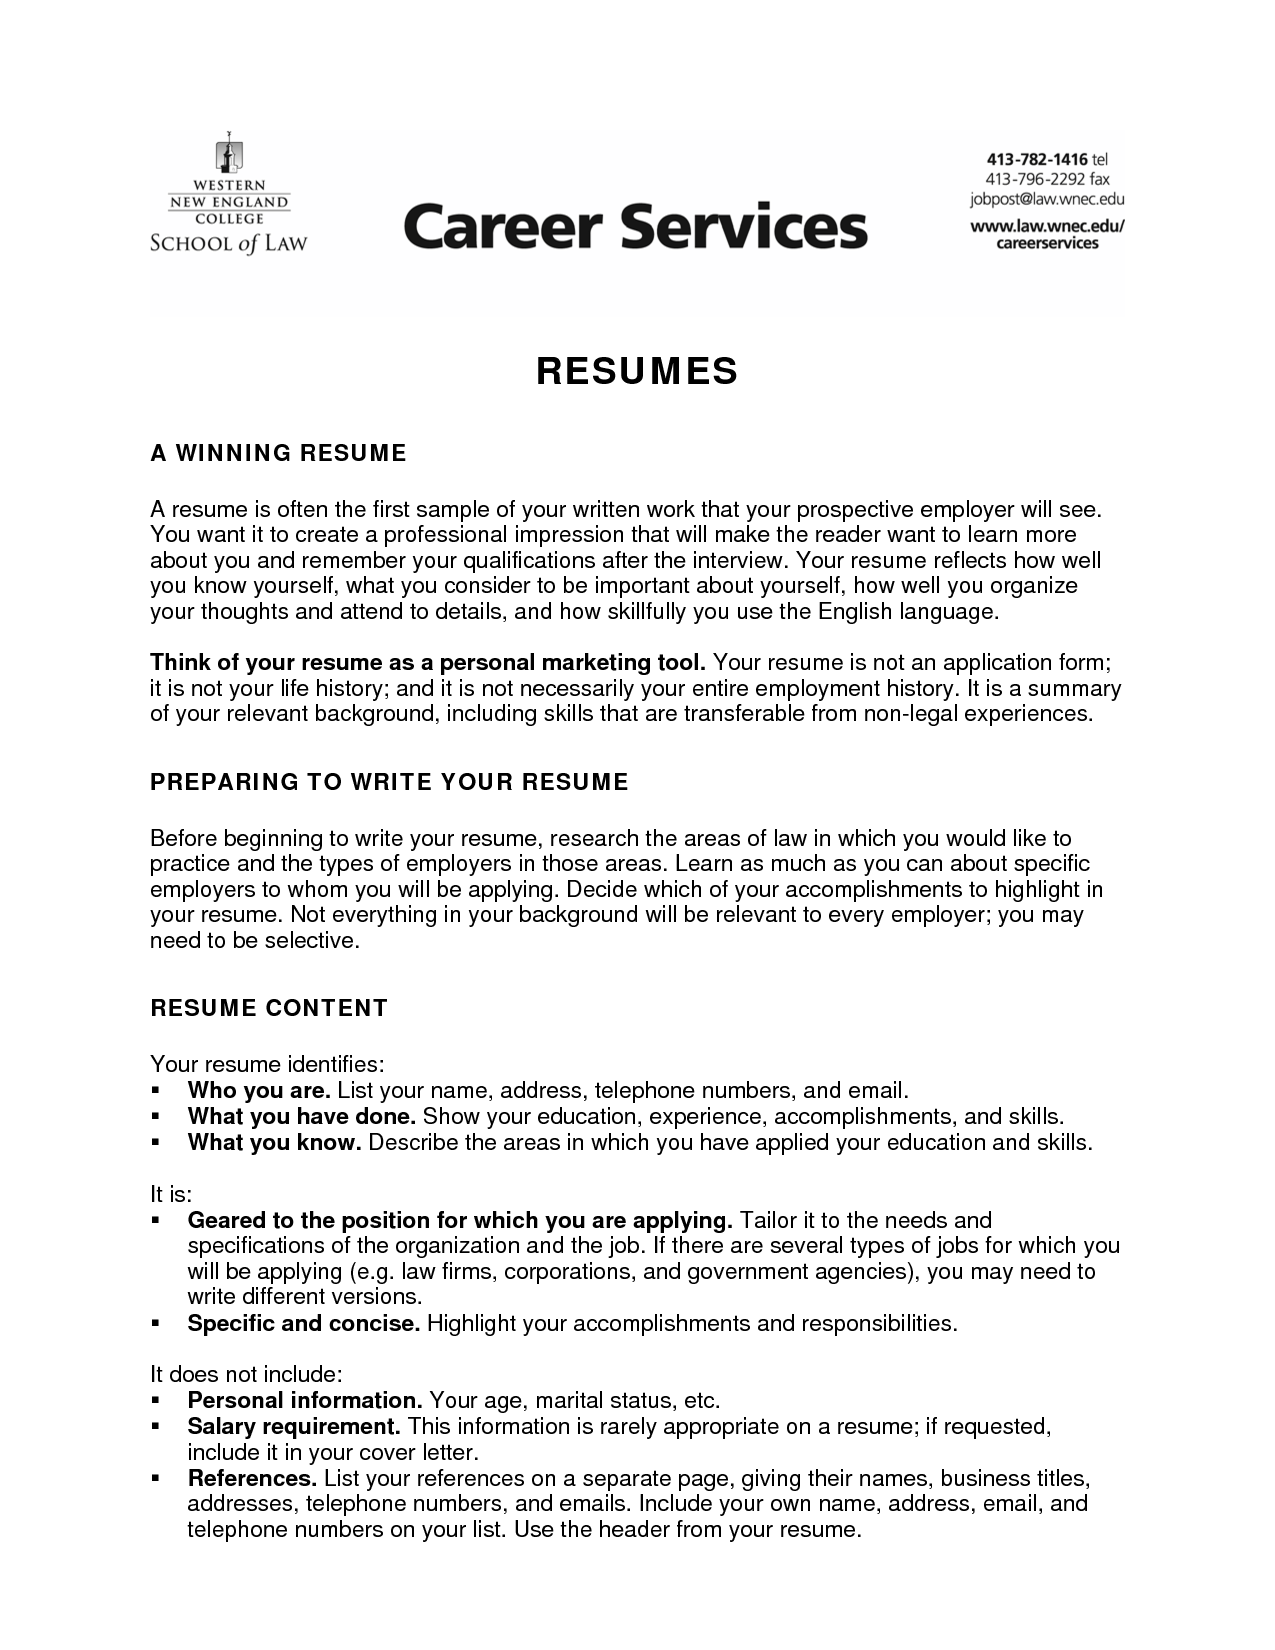 sample resume objective for college student latest format job examples ledger paper best free home design idea inspiration - What To Write In An Objective For A Resume